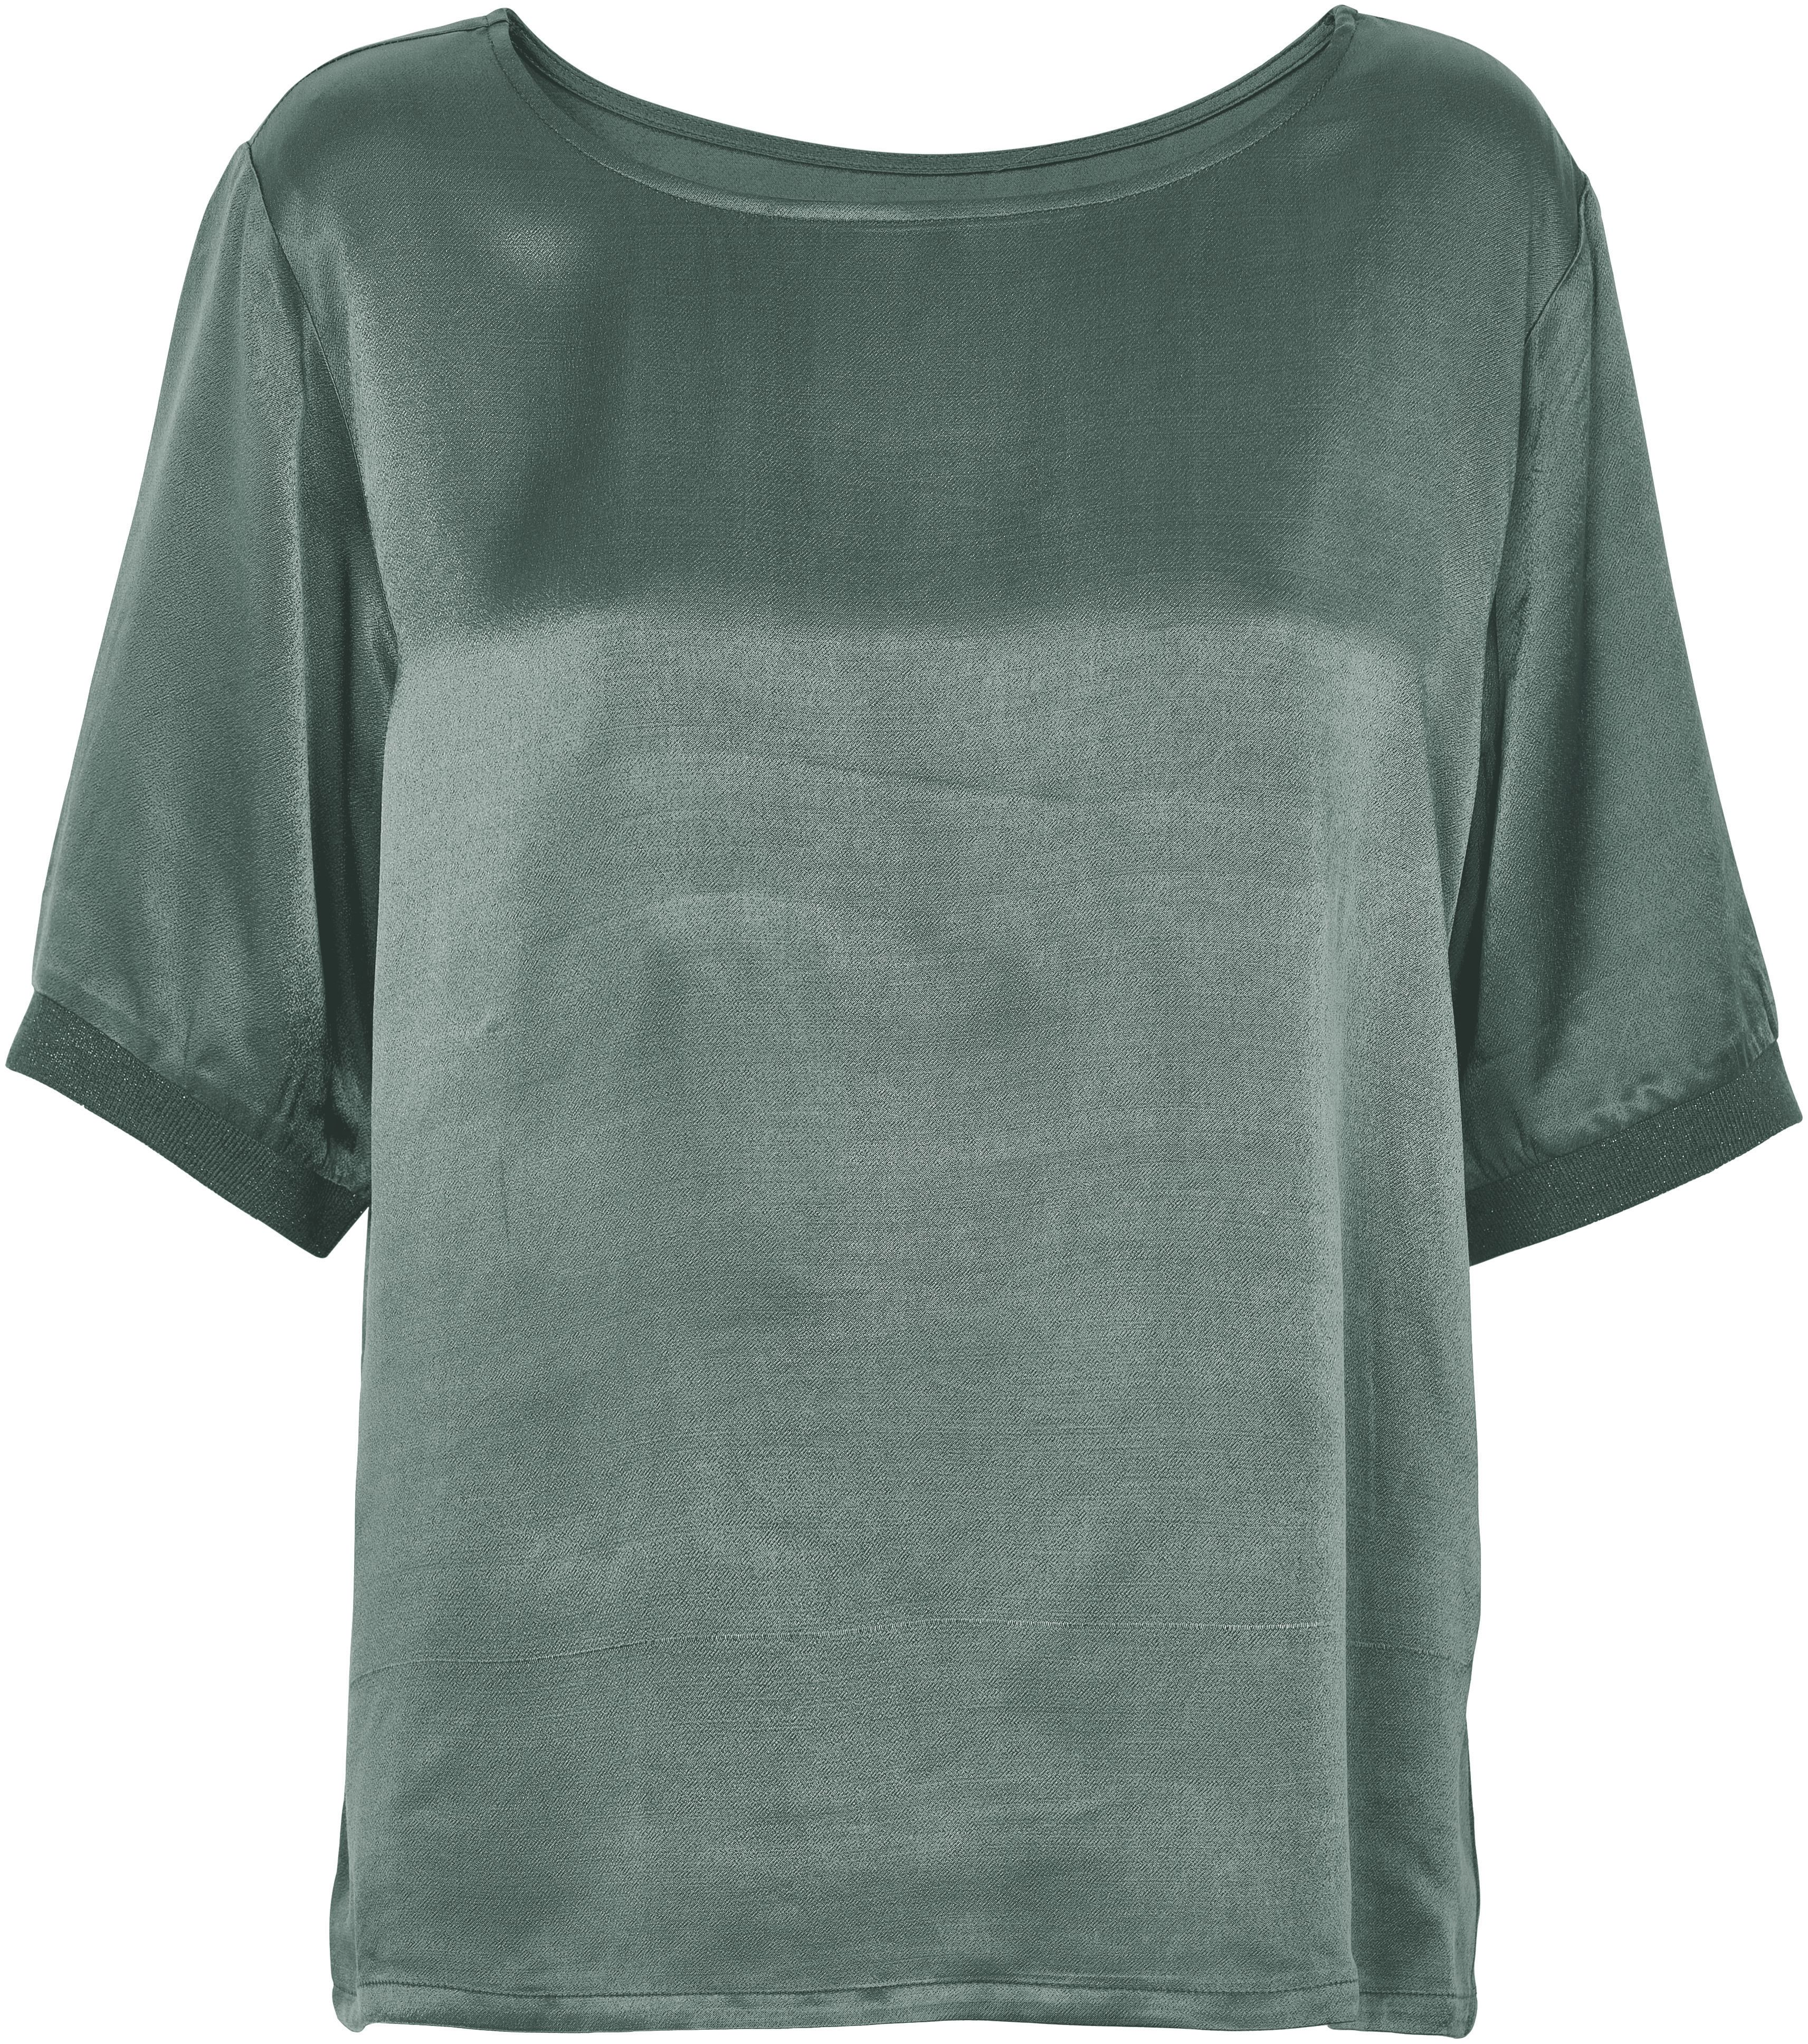 Soaked in Luxury Soaked in Luxury Metallic Oversized Top, Green